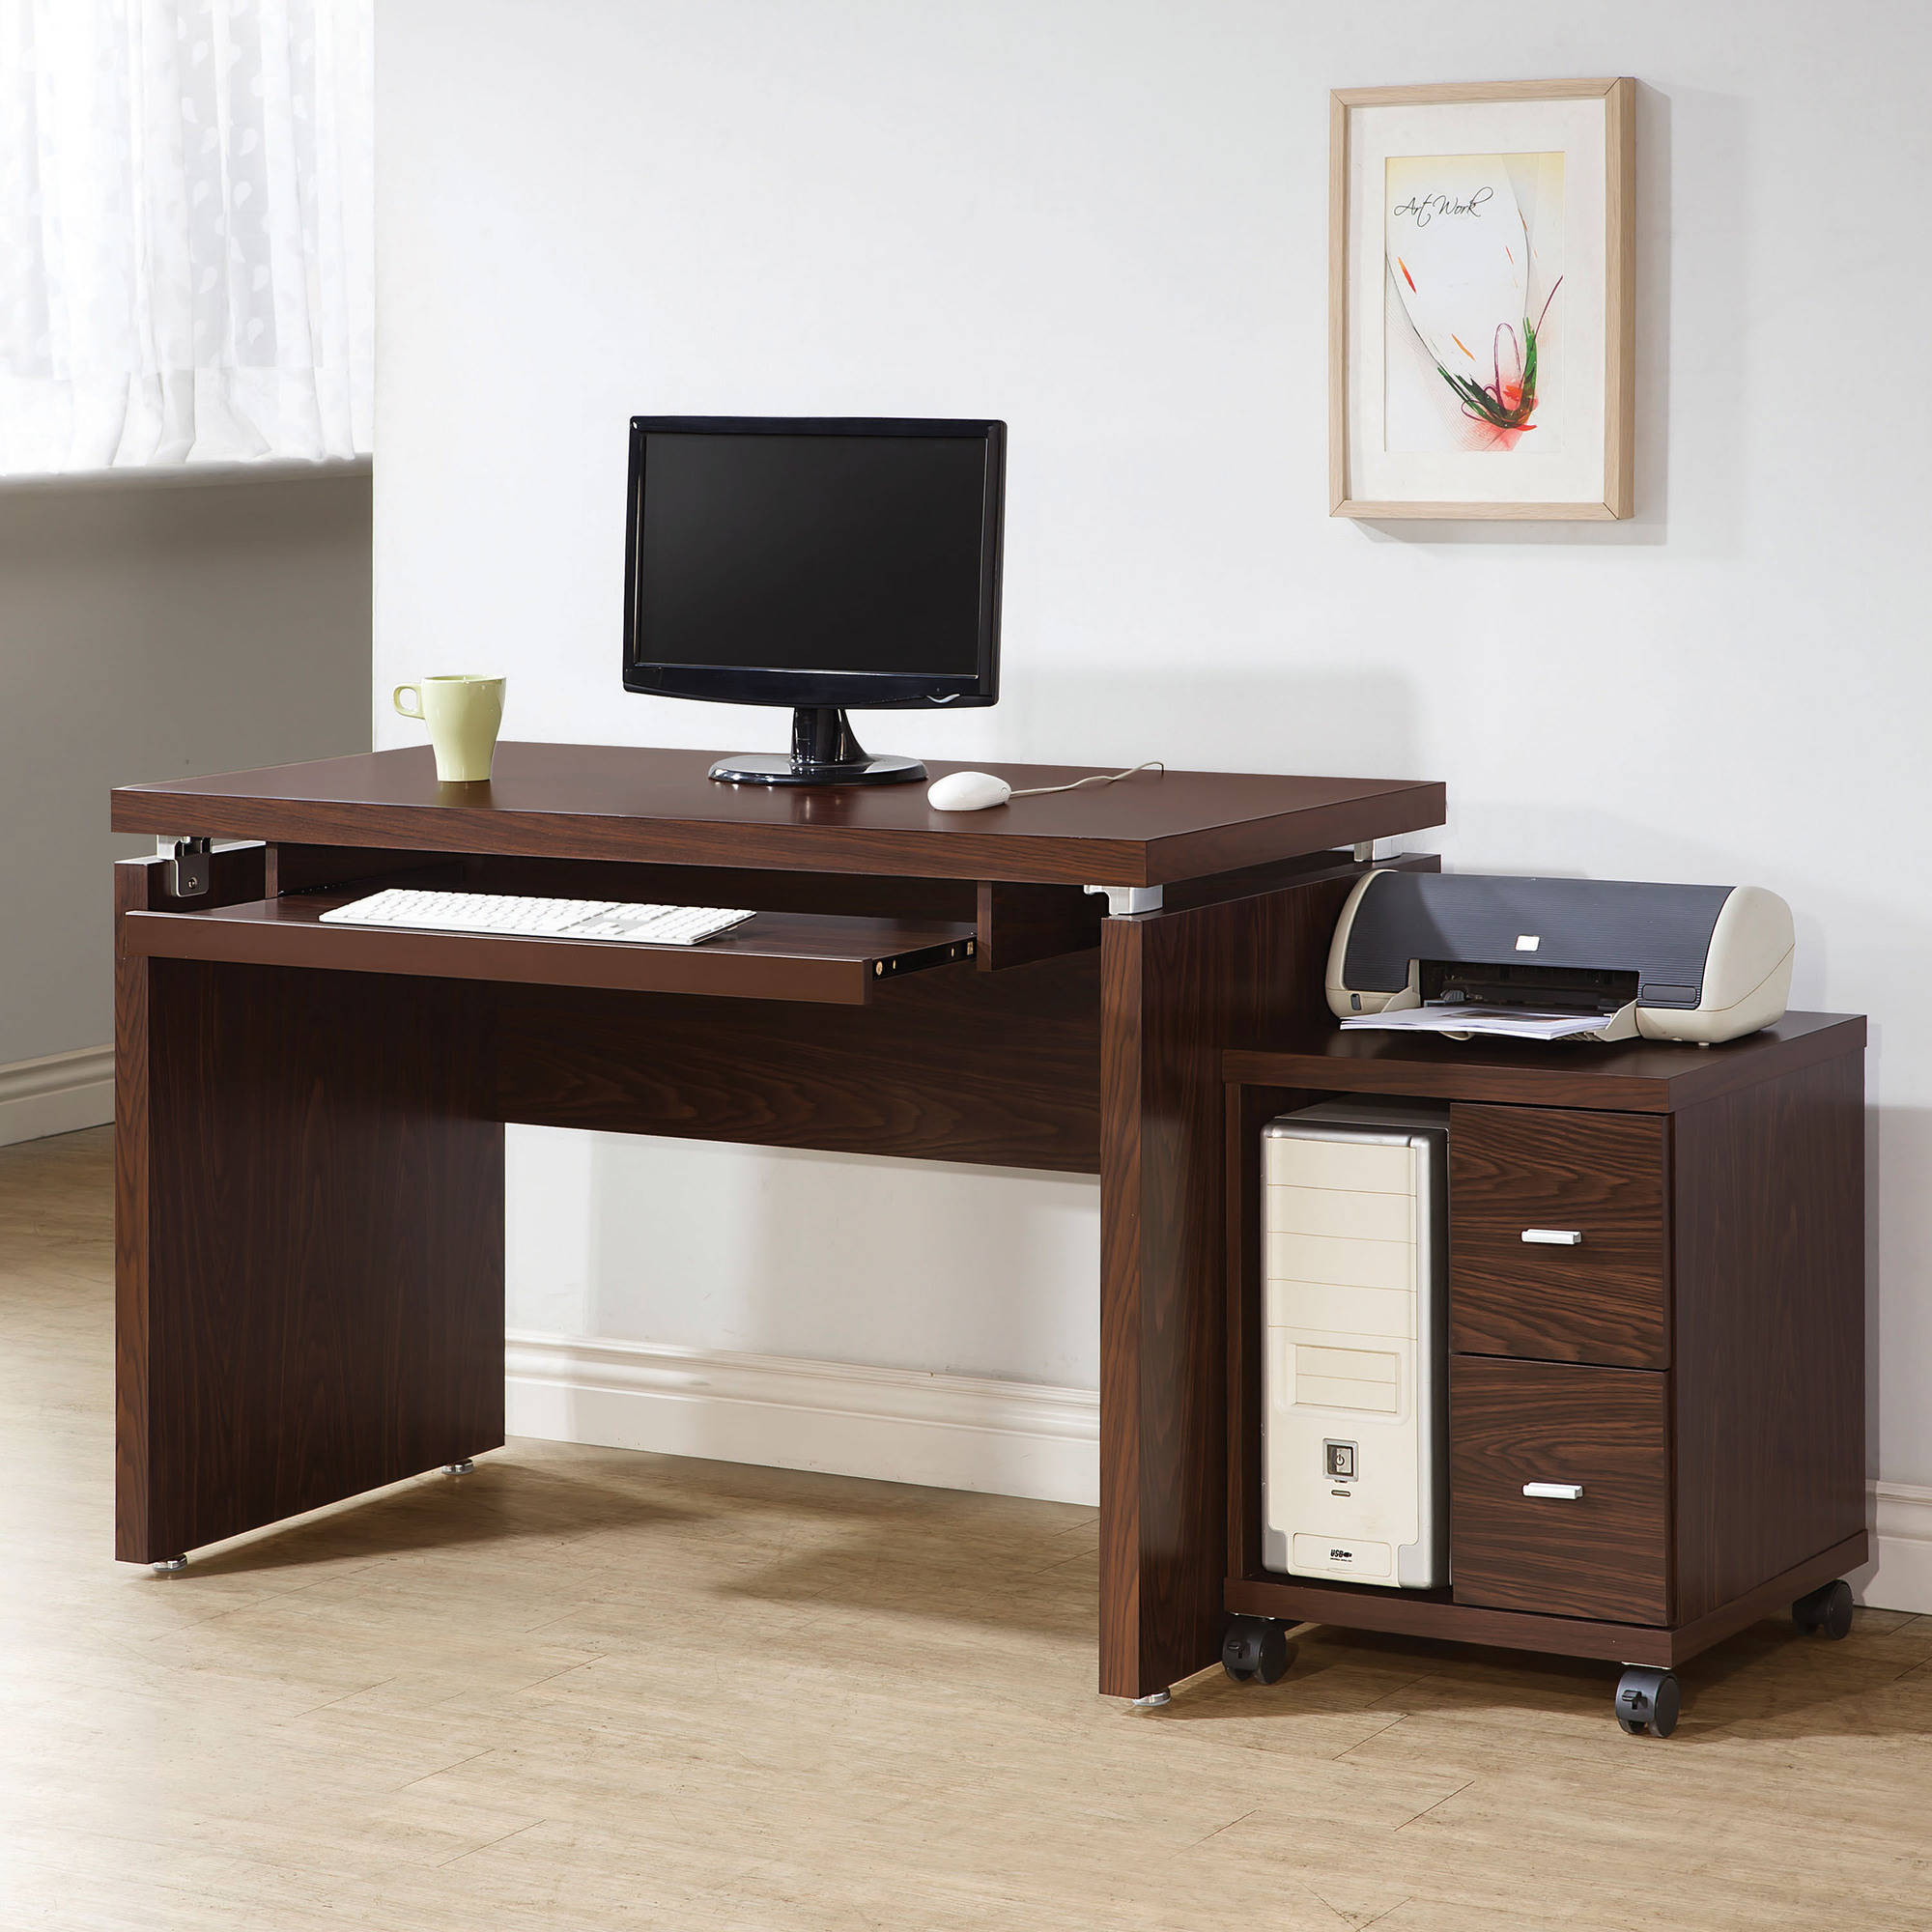 Coaster Clark 2-Drawer CPU Stand in Brown Finish